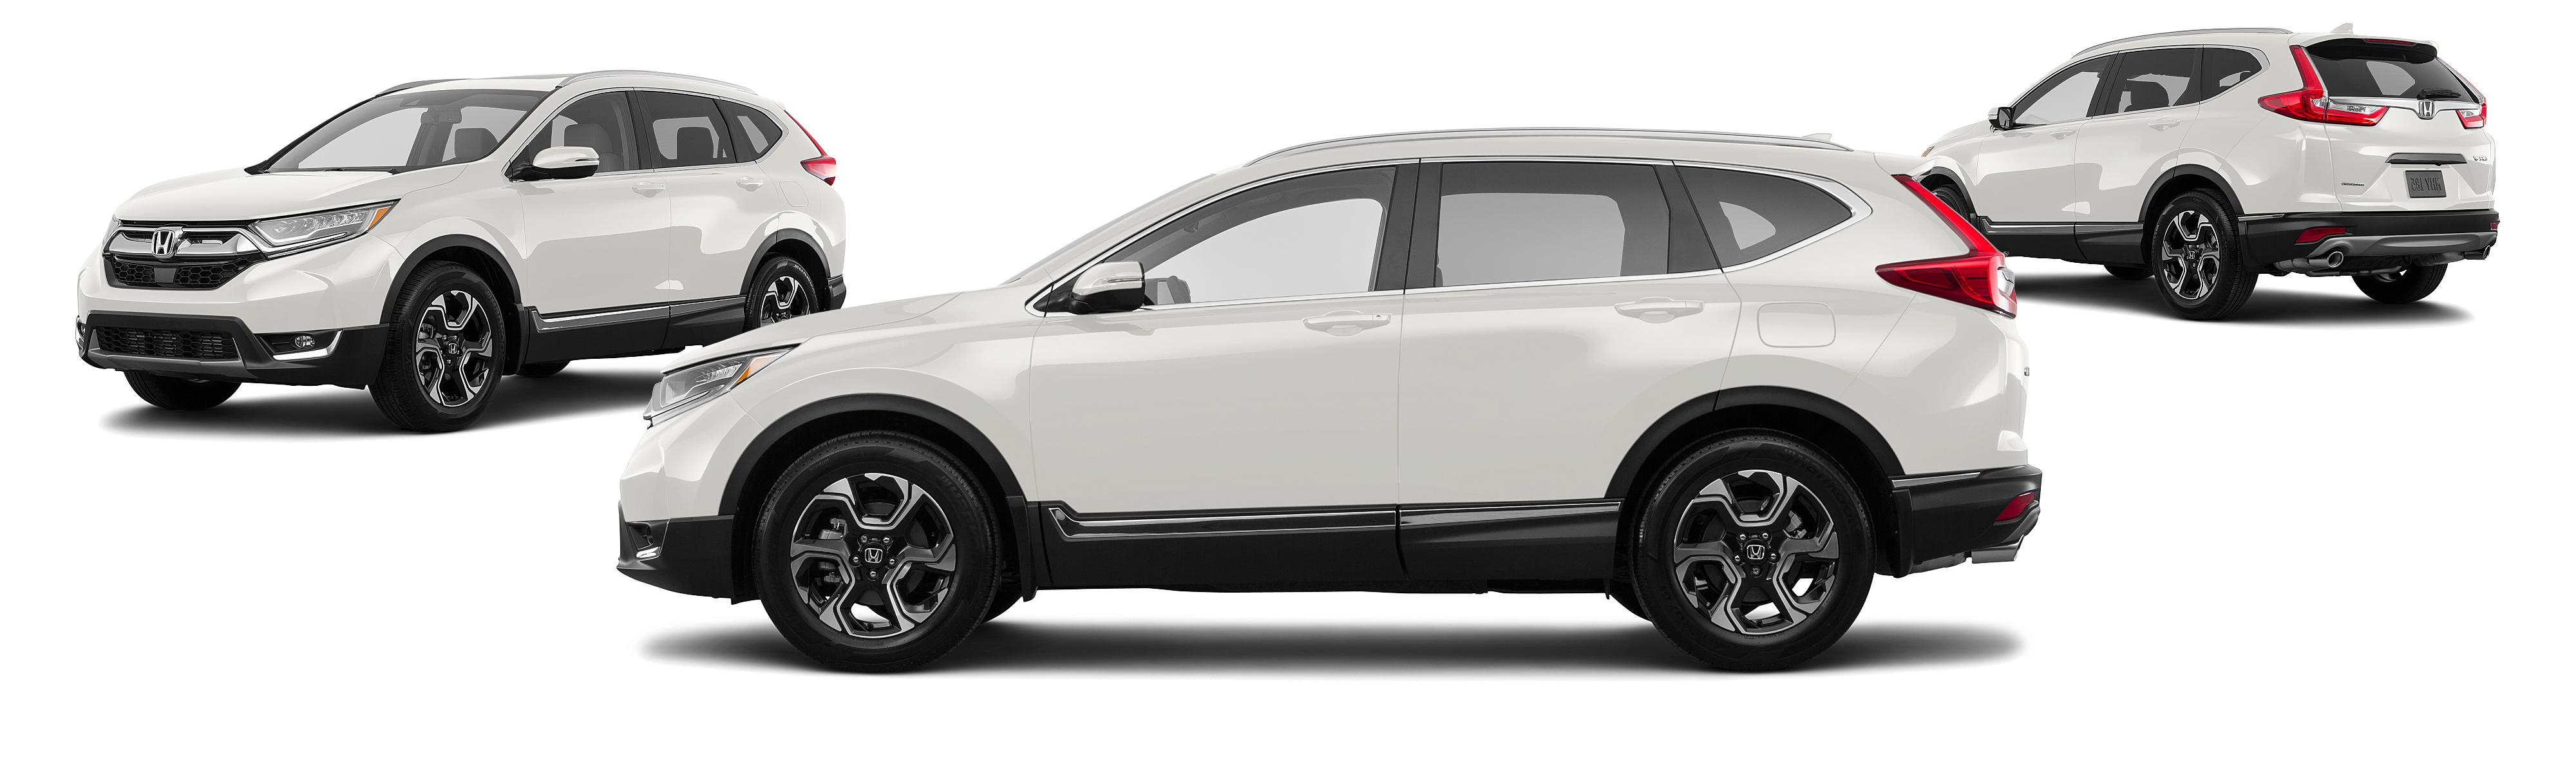 cr honda crv touring lx street portland in inventory sale v vehicle dartmouth for used en